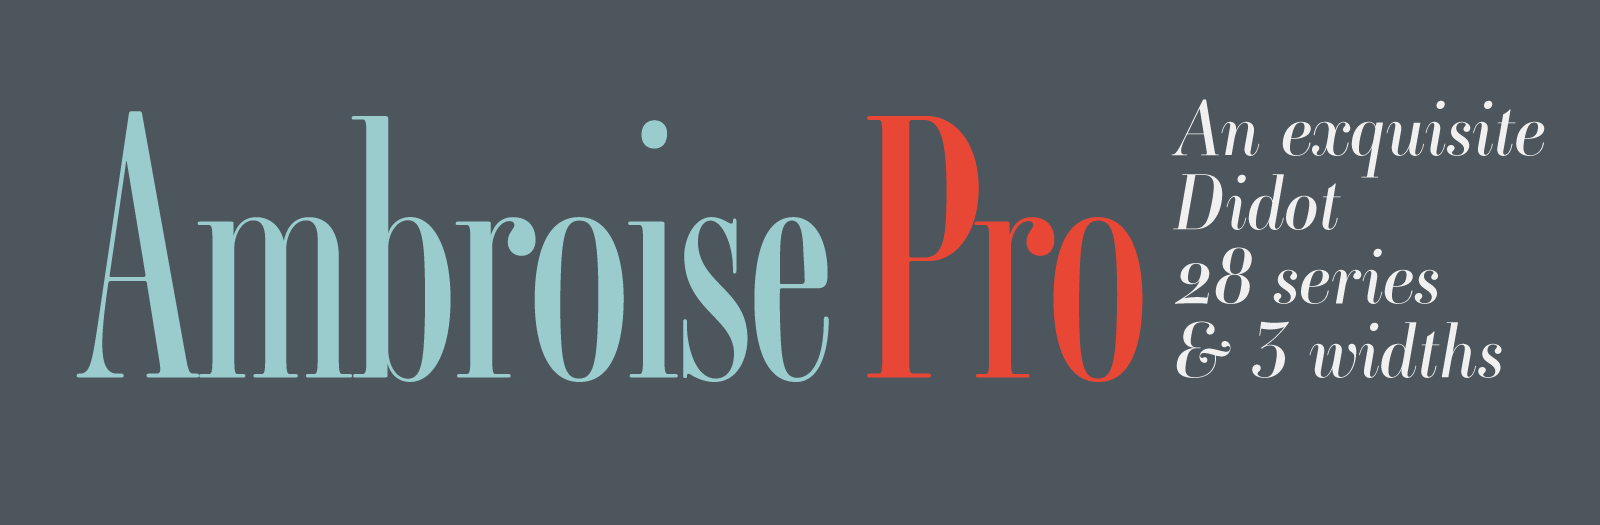 This new version of Ambroise Pro feature fully new italics, new weights and many other new glyphs!